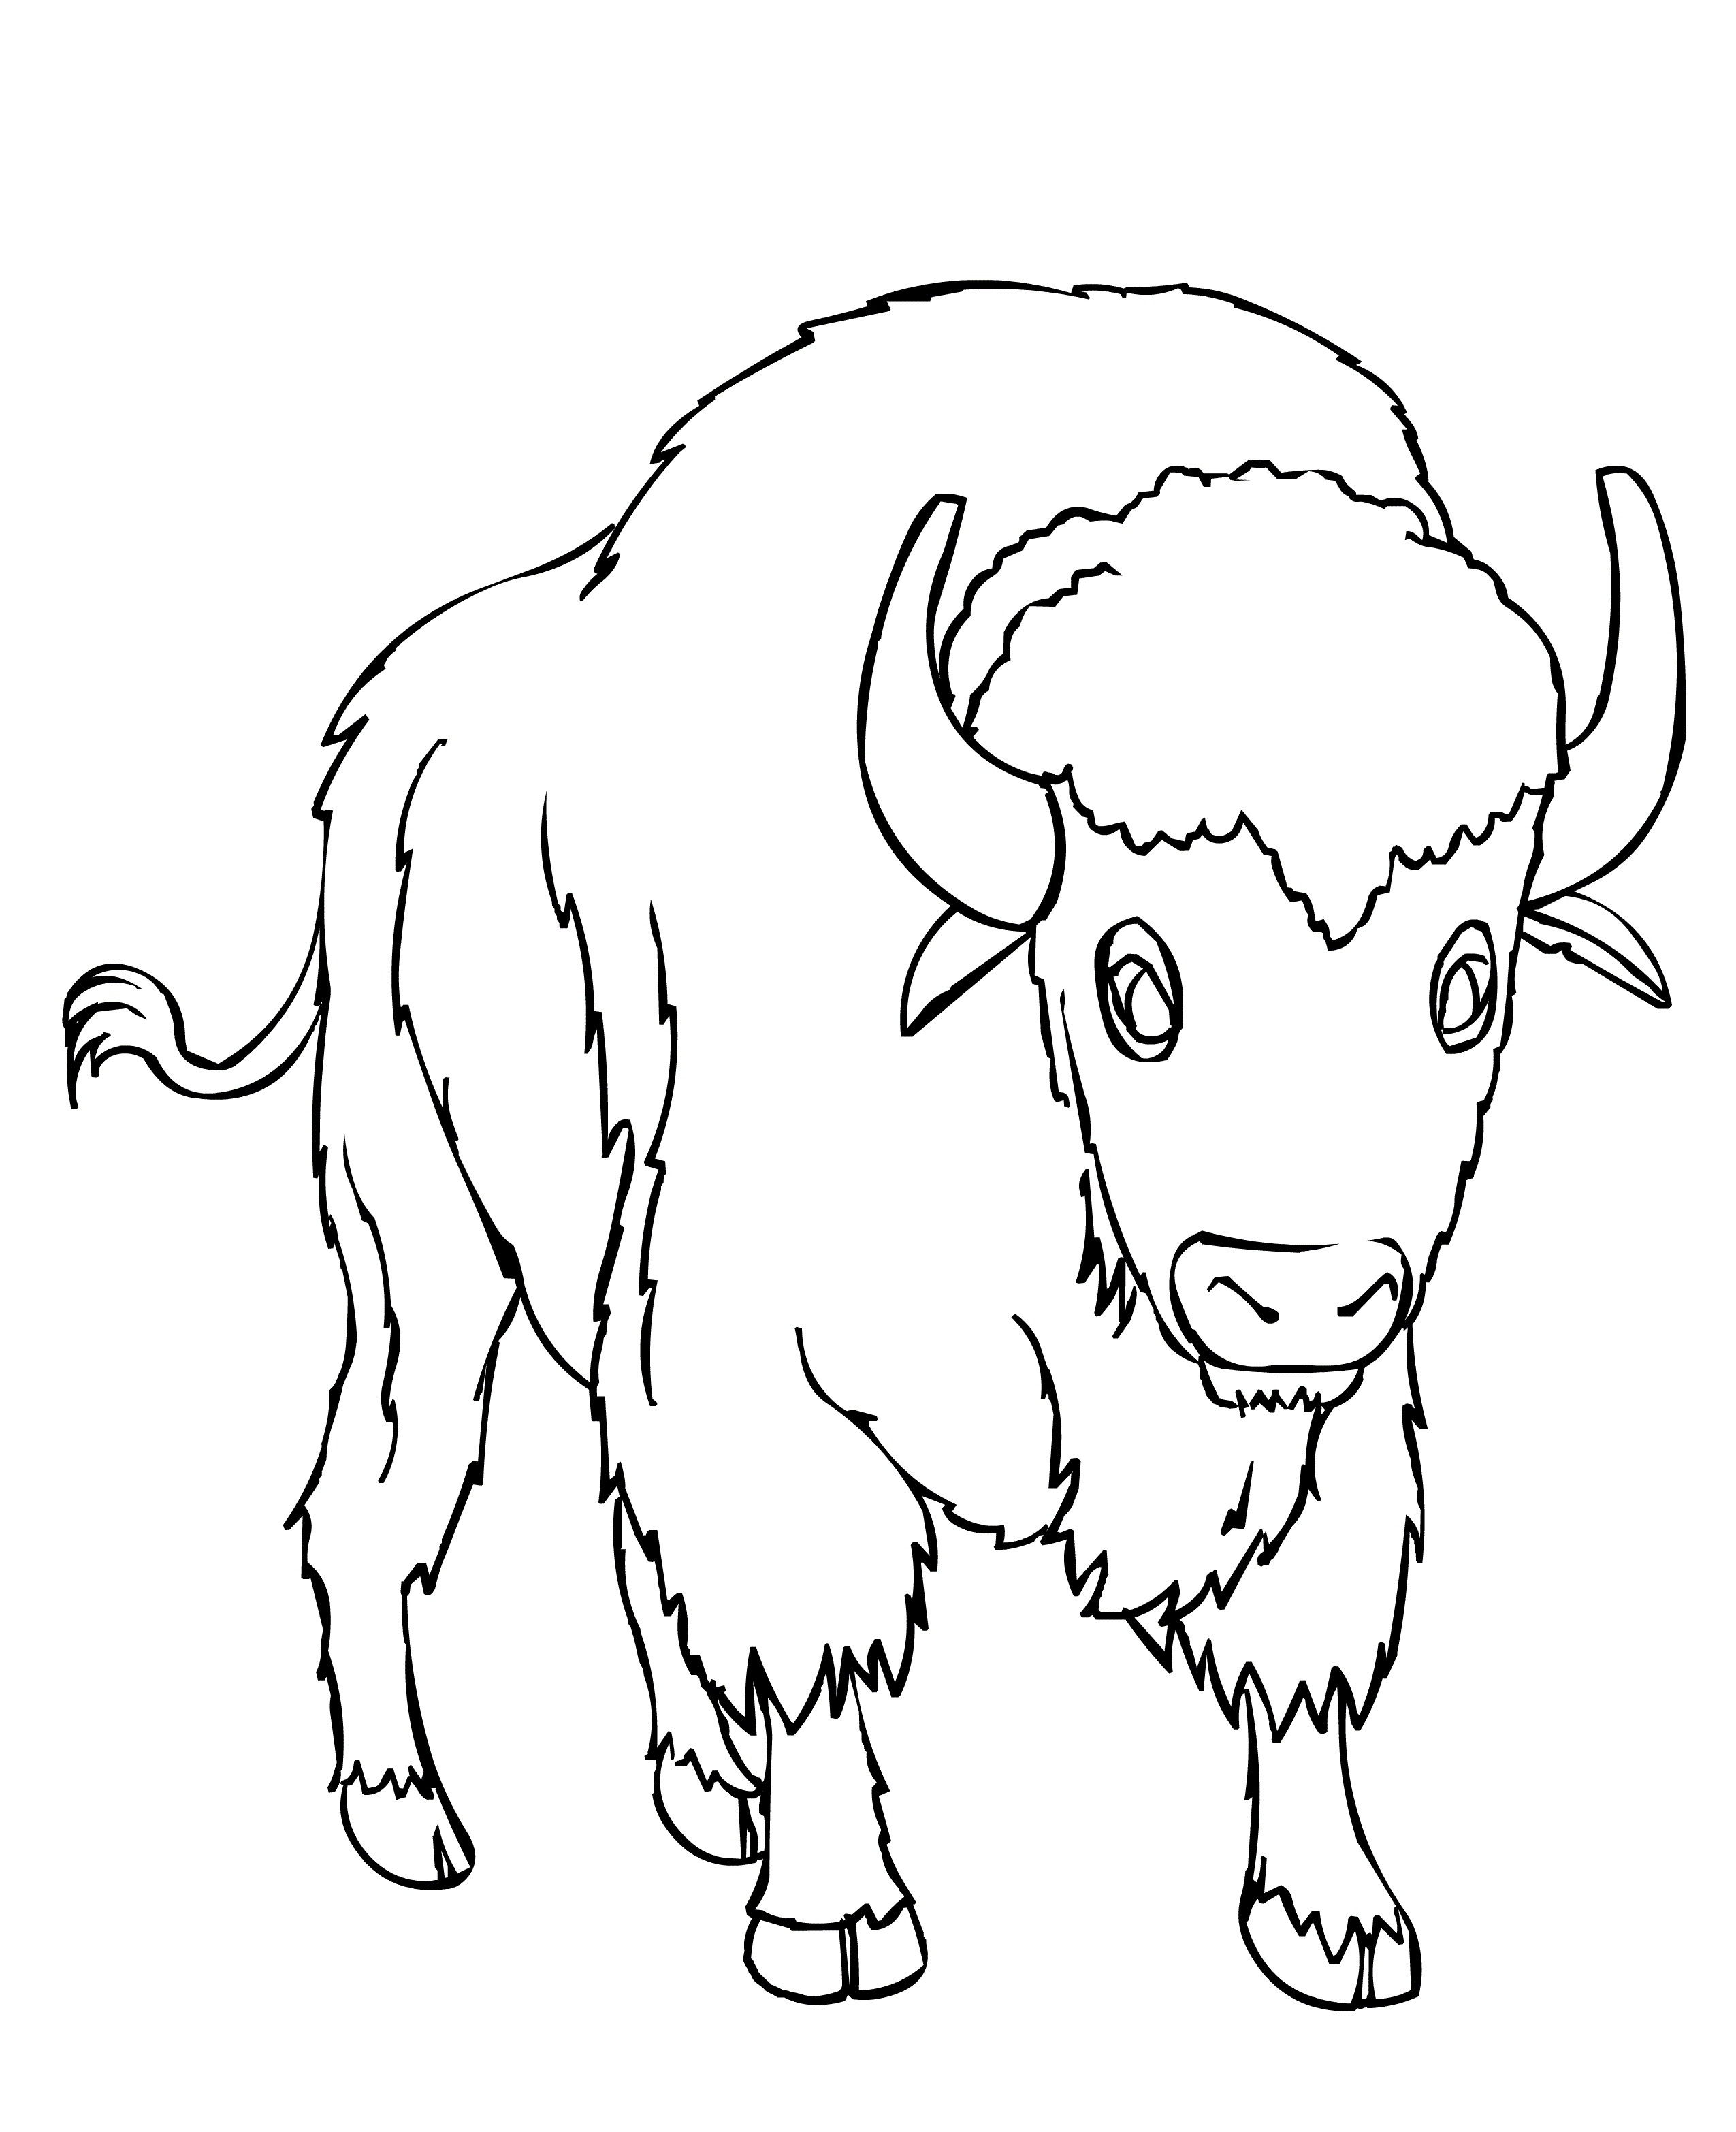 Free printable bison coloring pages for kids Coloring book for toddlers